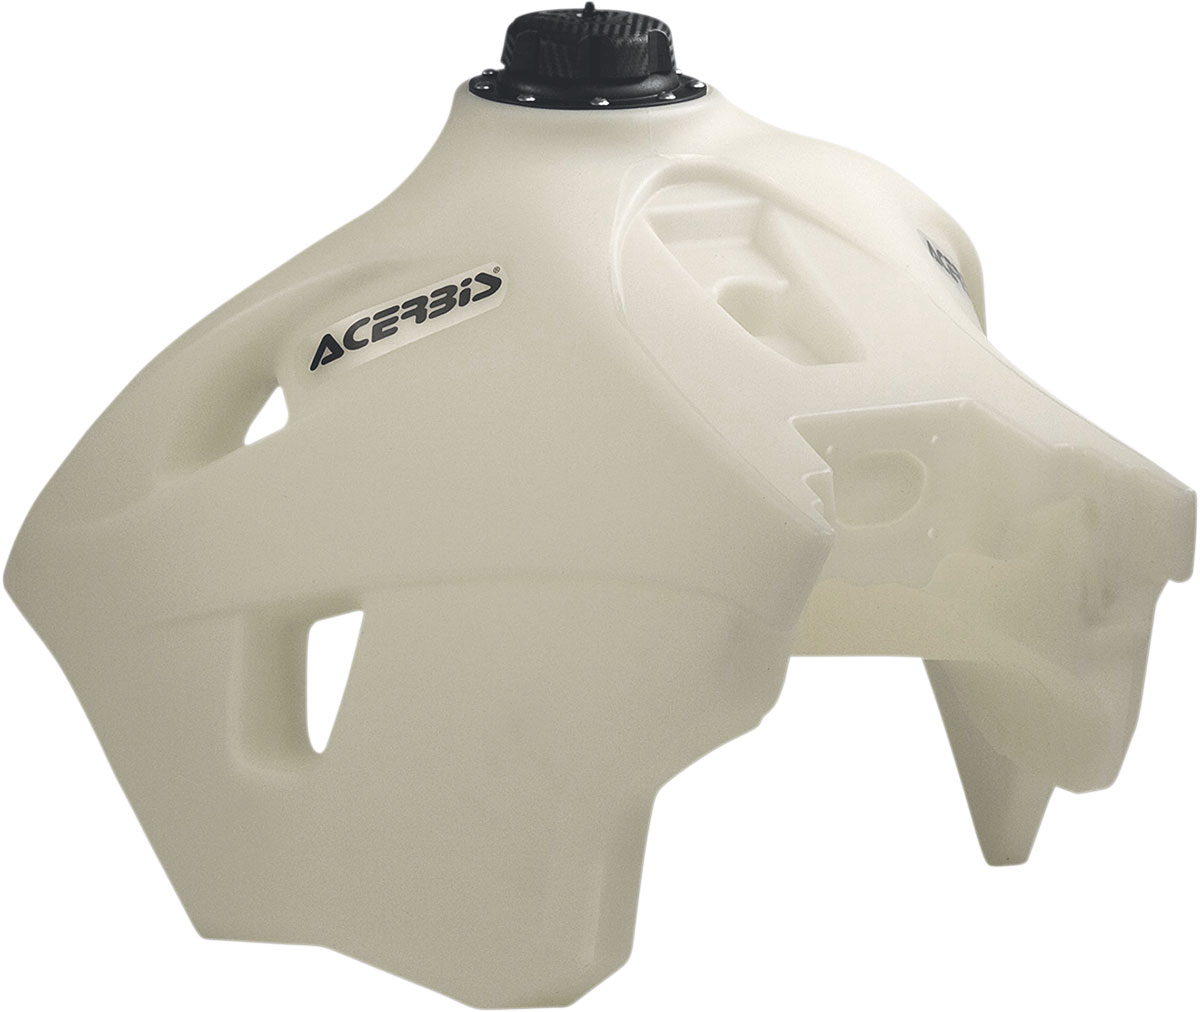 ACERBIS Large Capacity Fuel Tank 4.1 Gallon (Natural)